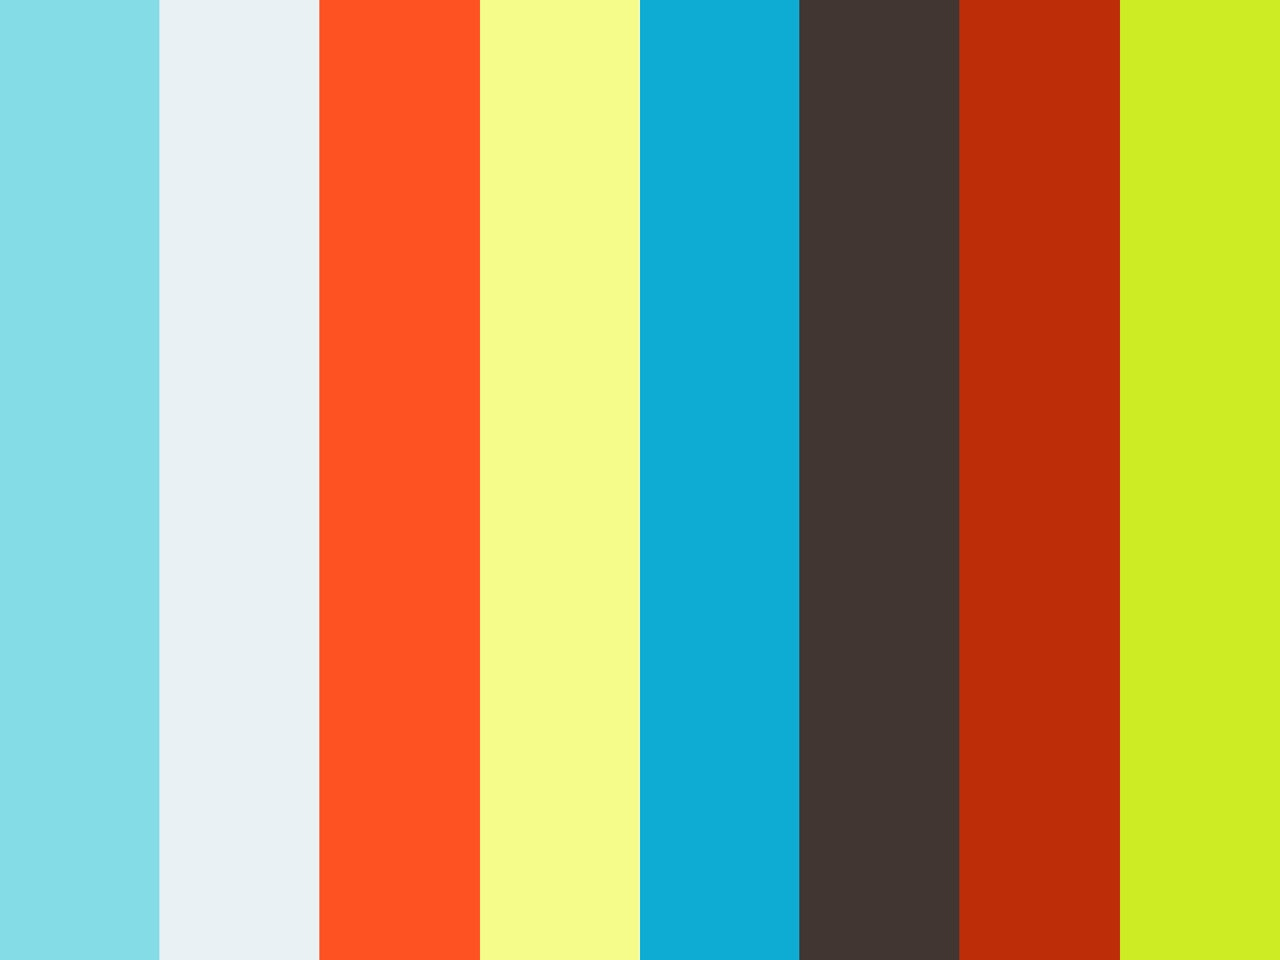 Tigers fight at Seattle zoo